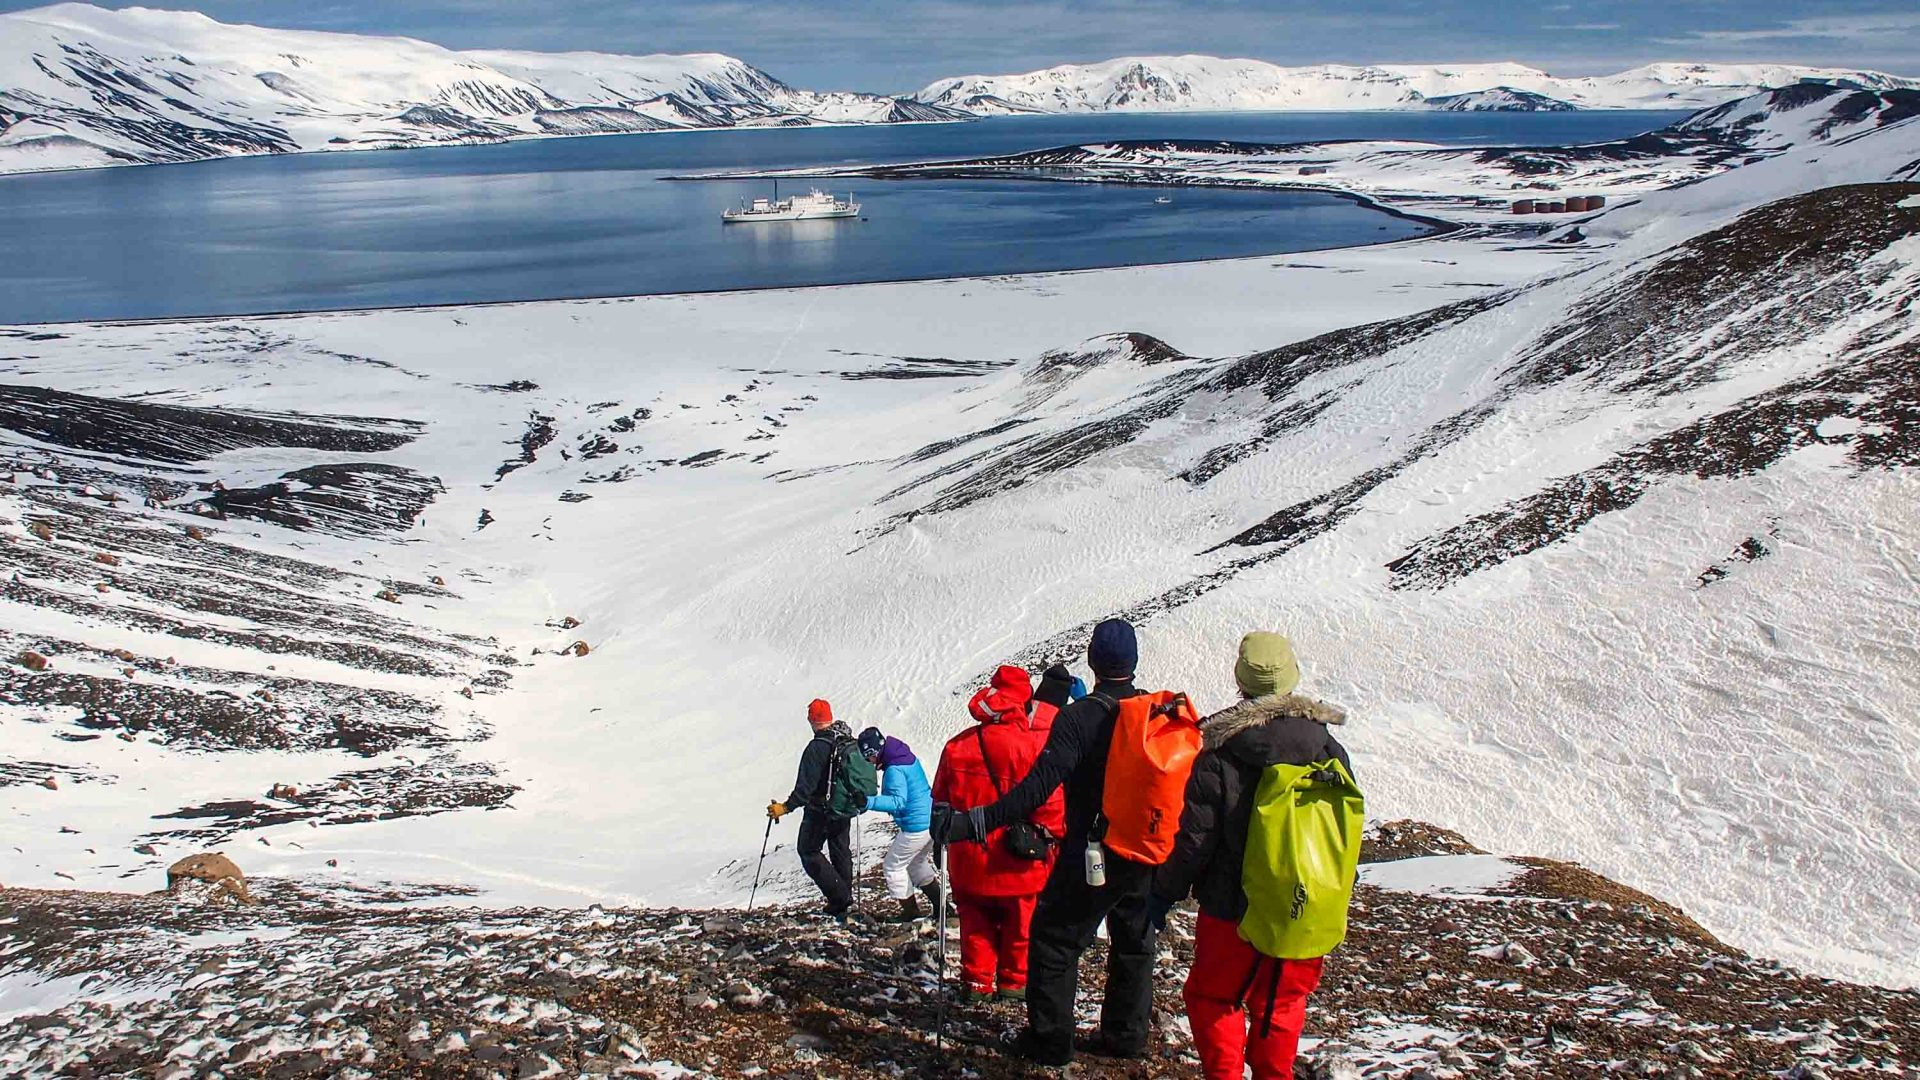 A group walks along Deception Island in Antarctica.